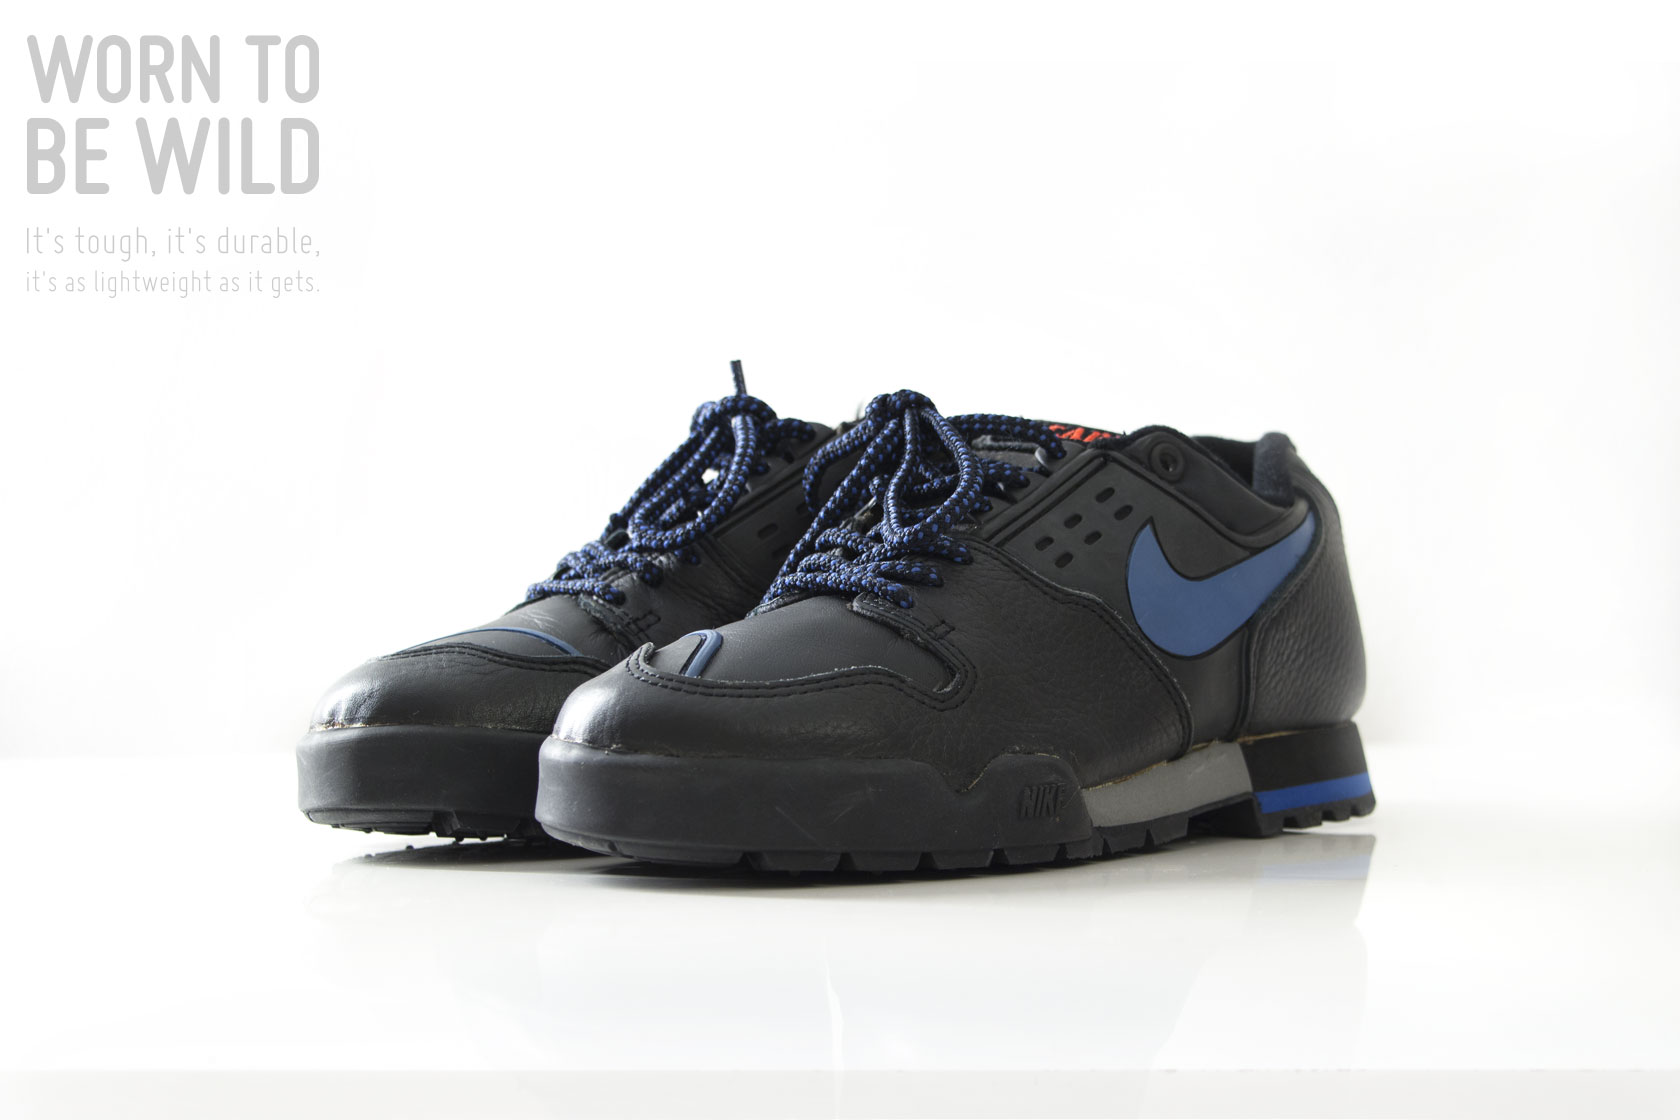 buy online a3aa4 35a18 WORN TO BE WILD » Nike Son of Lava Dome Escape